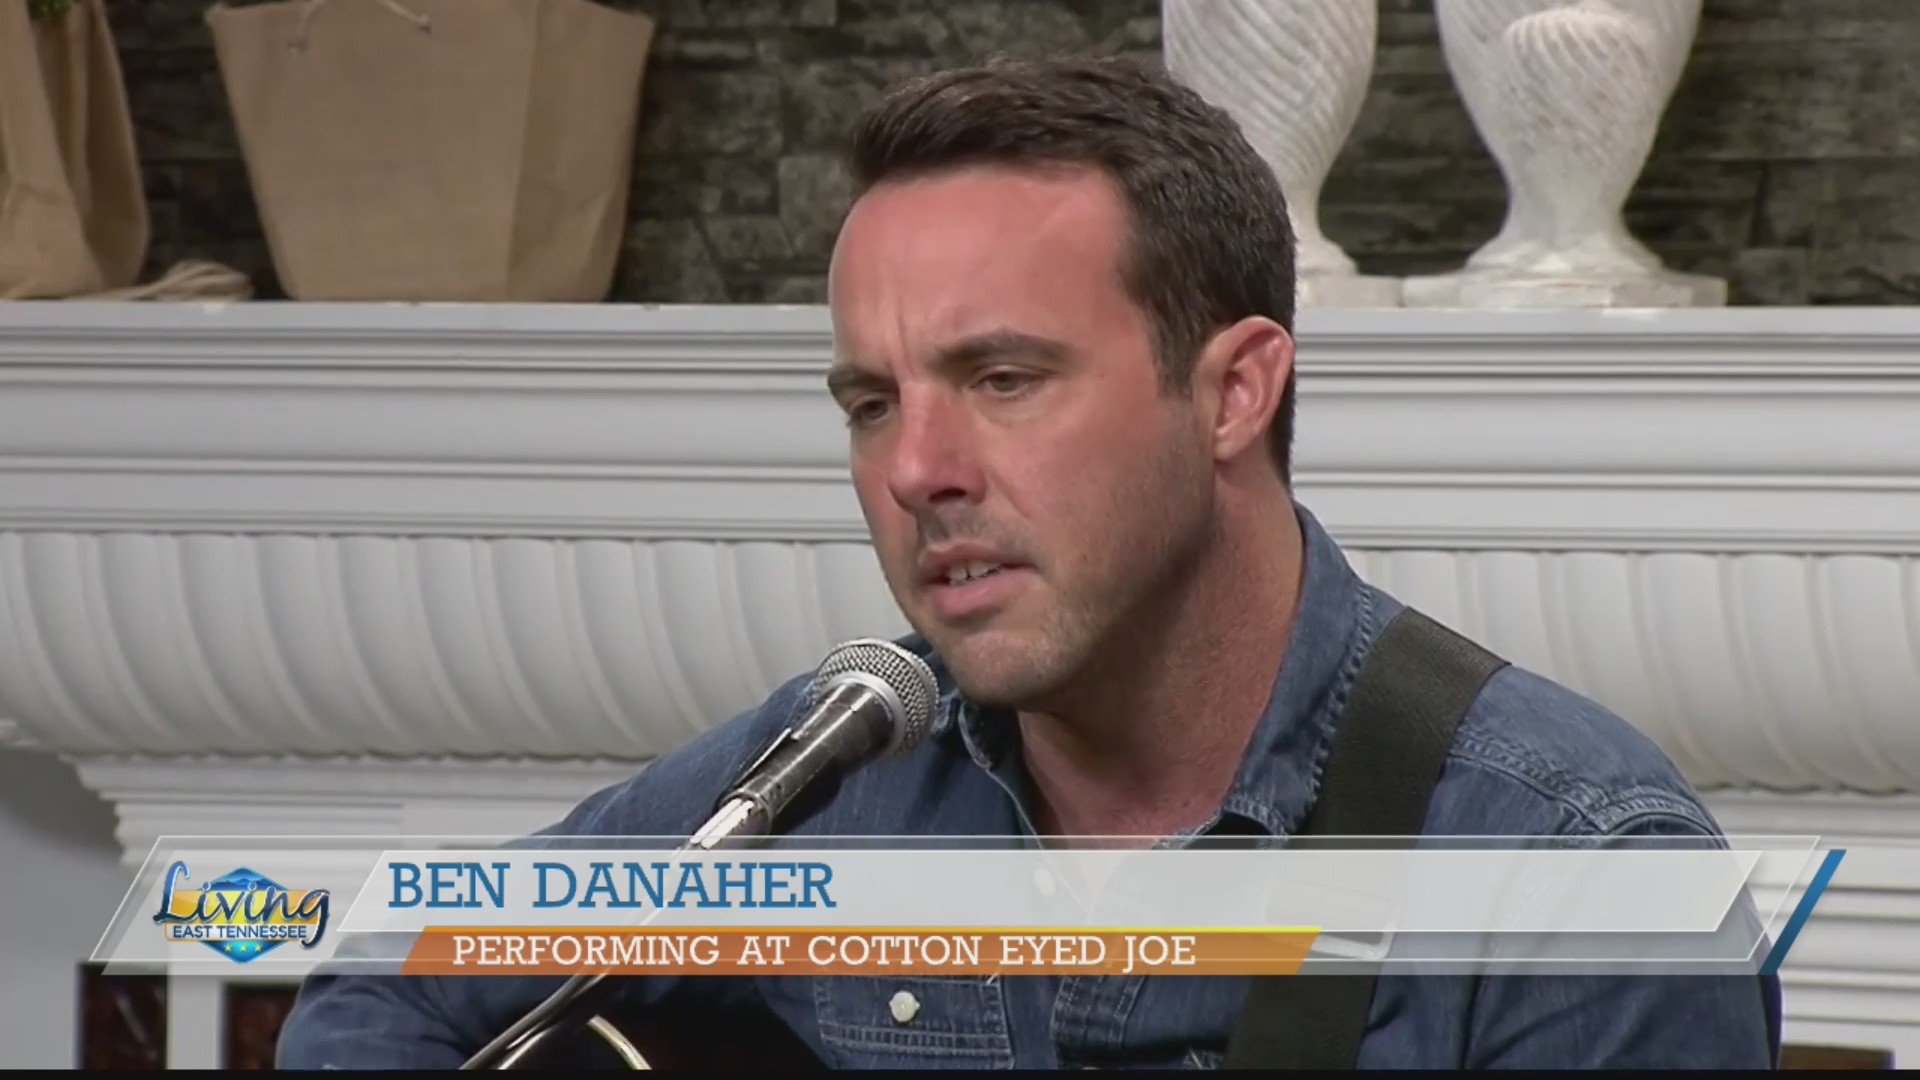 Don't miss Ben Danaher at The Cotton Eyed Joe | WATE